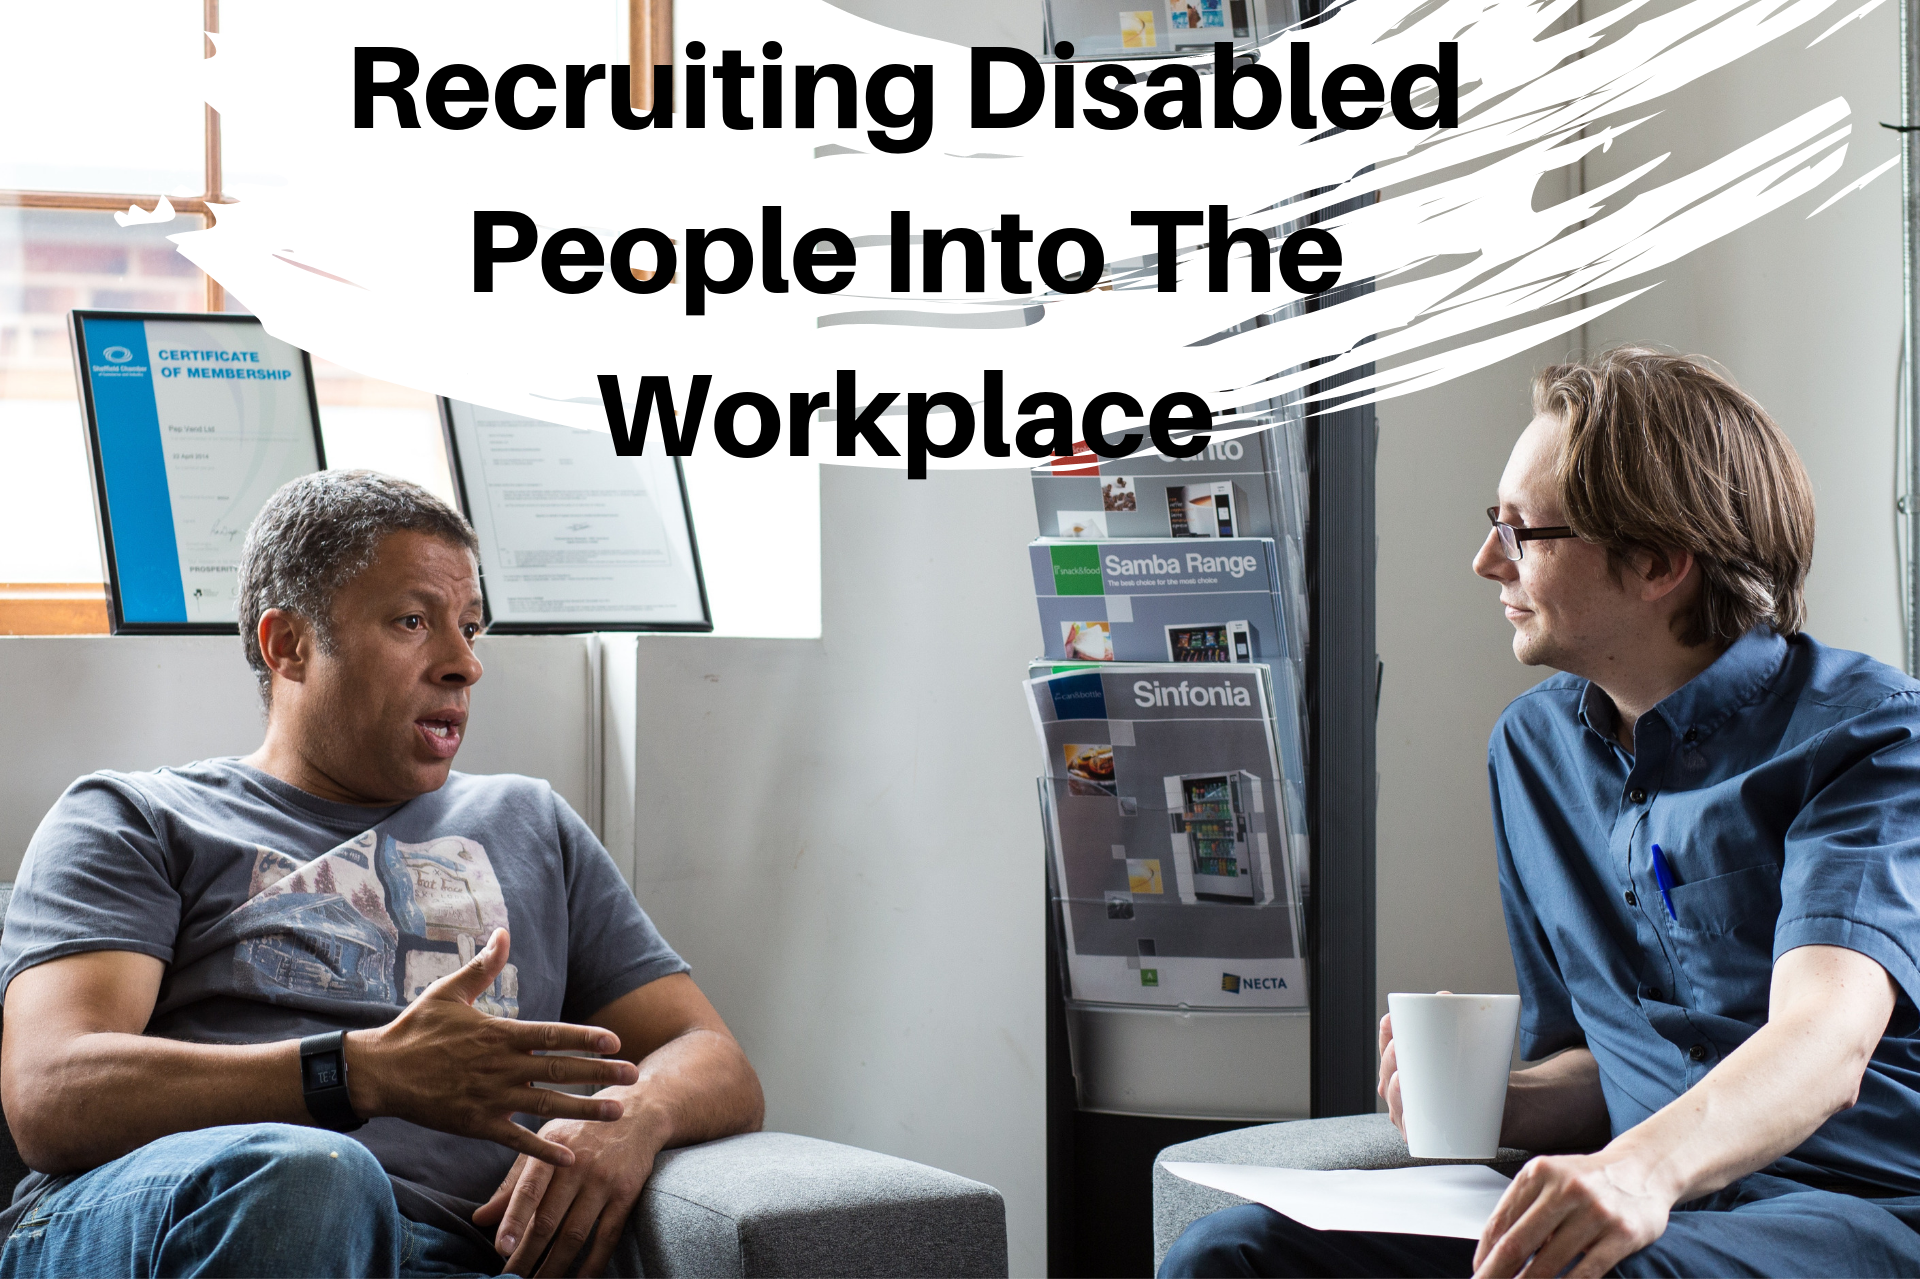 Recruiting DISABLED PEOPLE into the workplace infographic. Explained below.